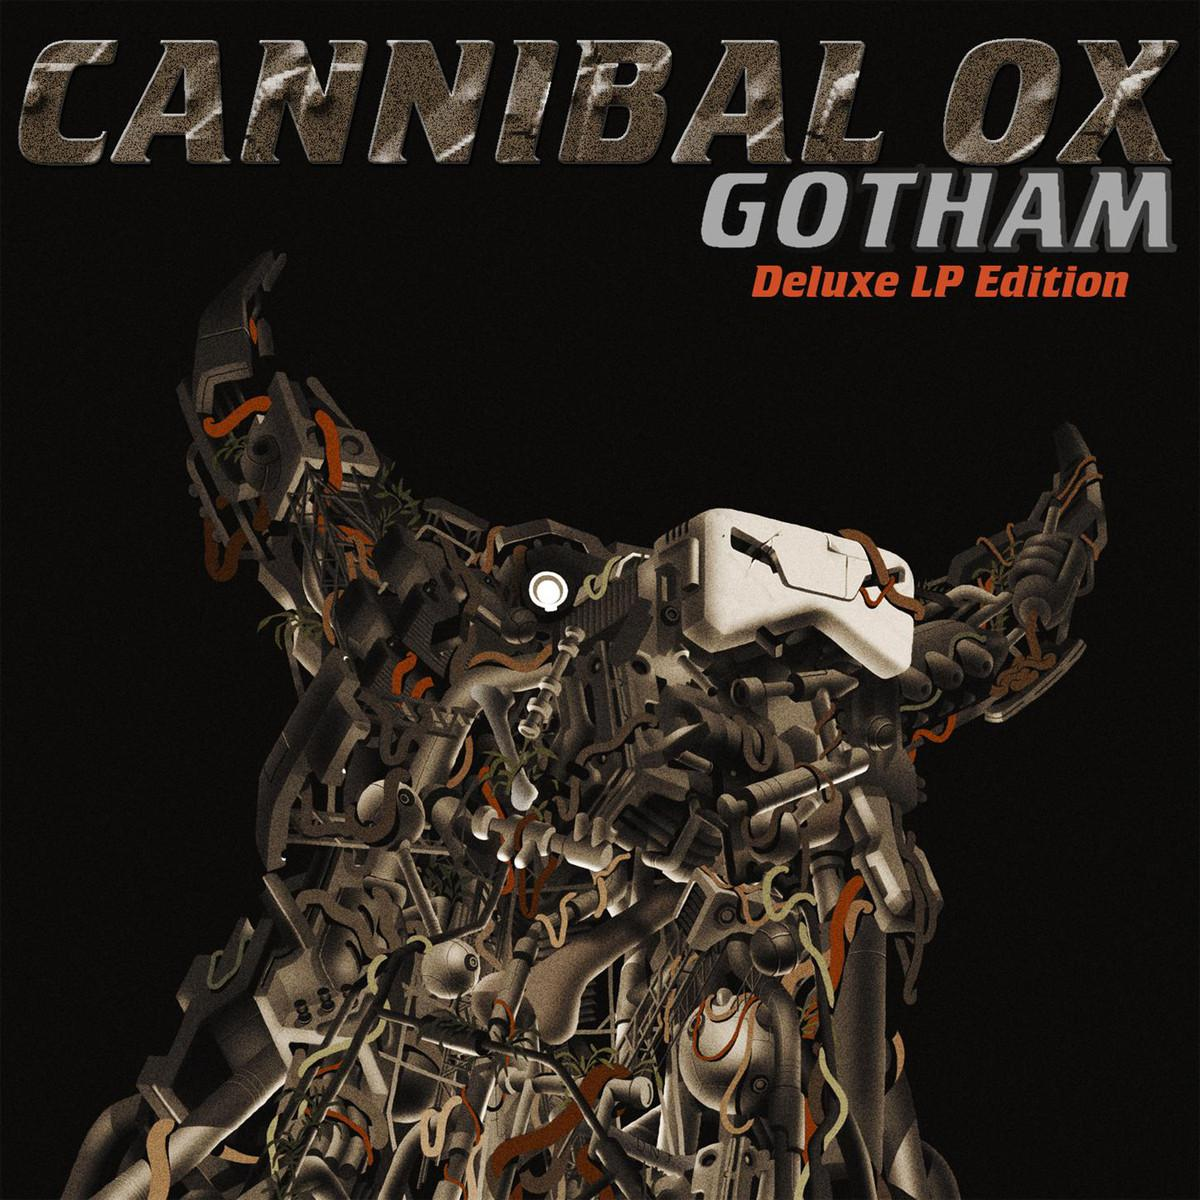 Cannibal Ox - Gotham (2013) [MULTI]